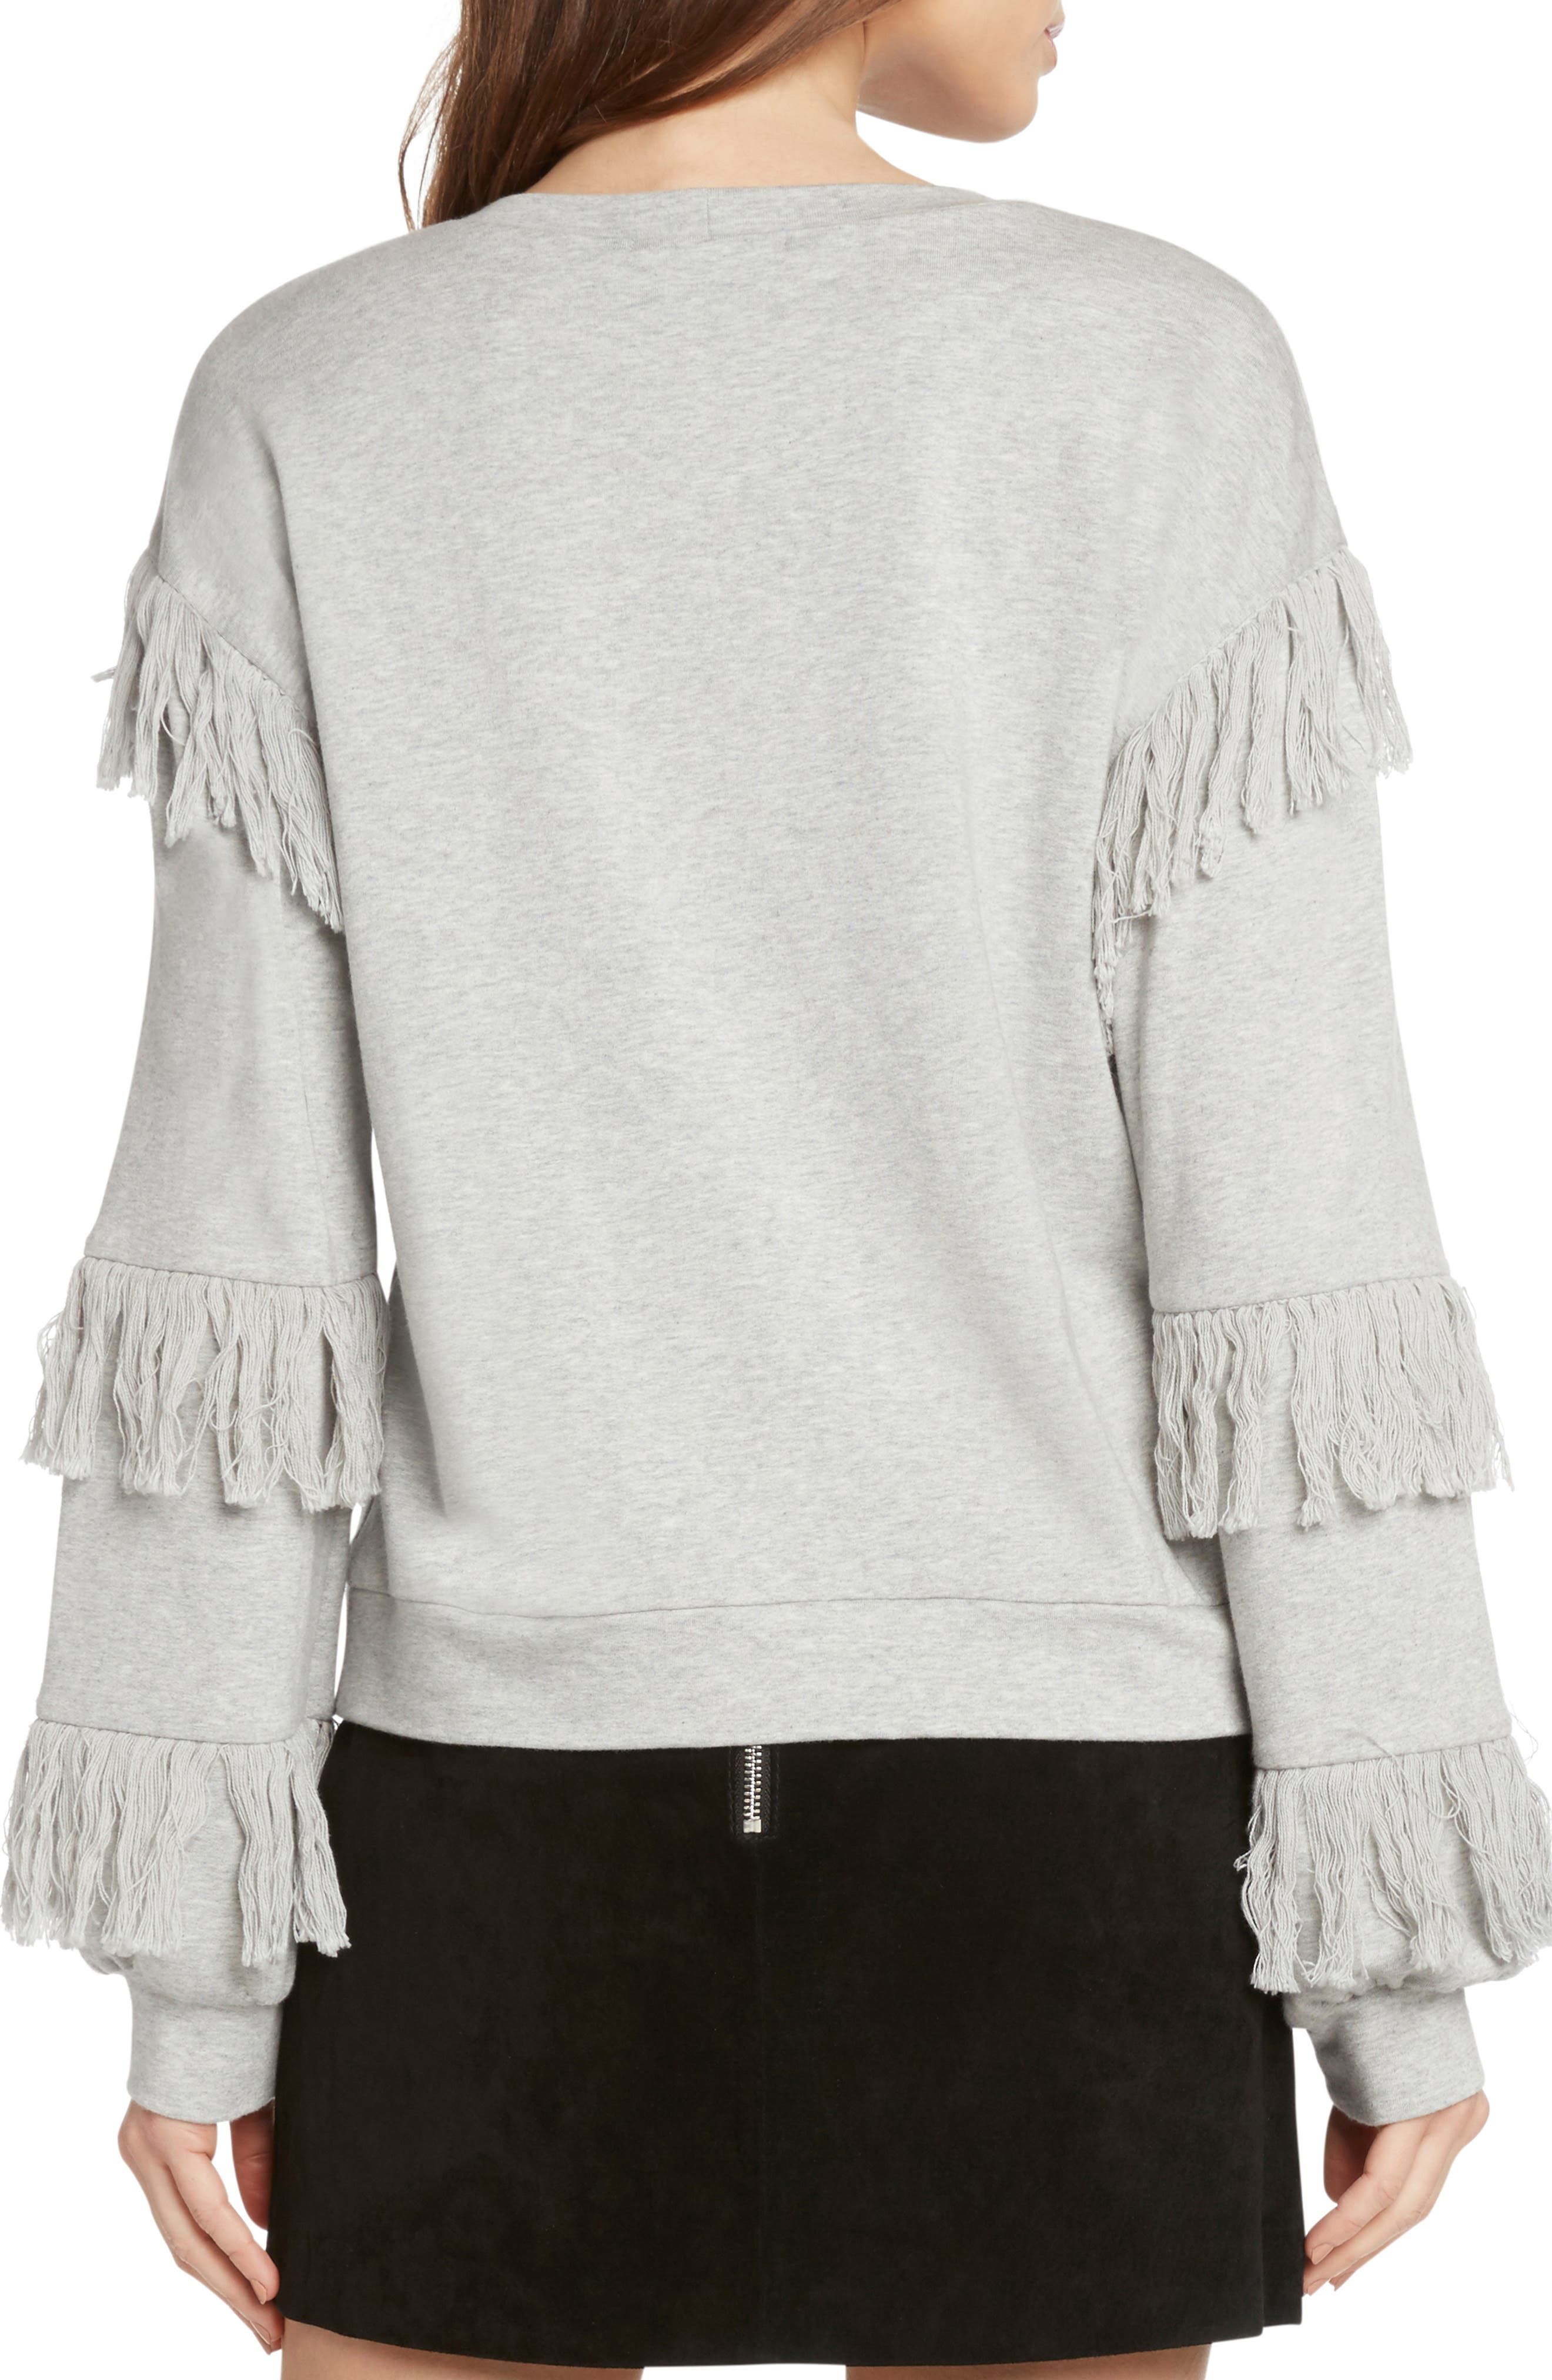 Fringed French Terry Sweatshirt,                             Alternate thumbnail 2, color,                             HEATHER GREY